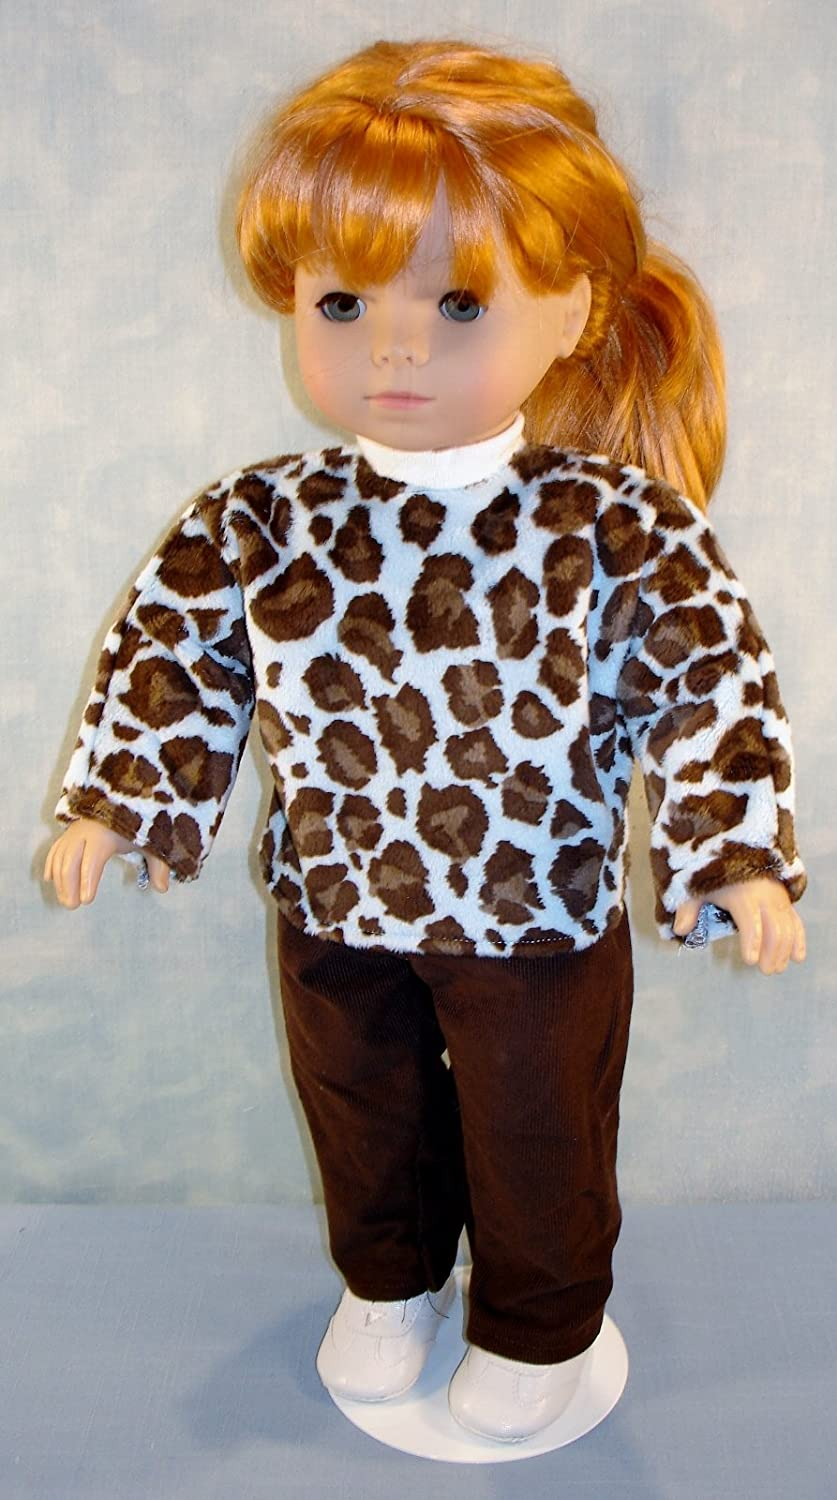 18 Inch Doll Clothes Minky Leopard Blue Pants Set handmade by Jane Ellen to fit 18 inch dolls